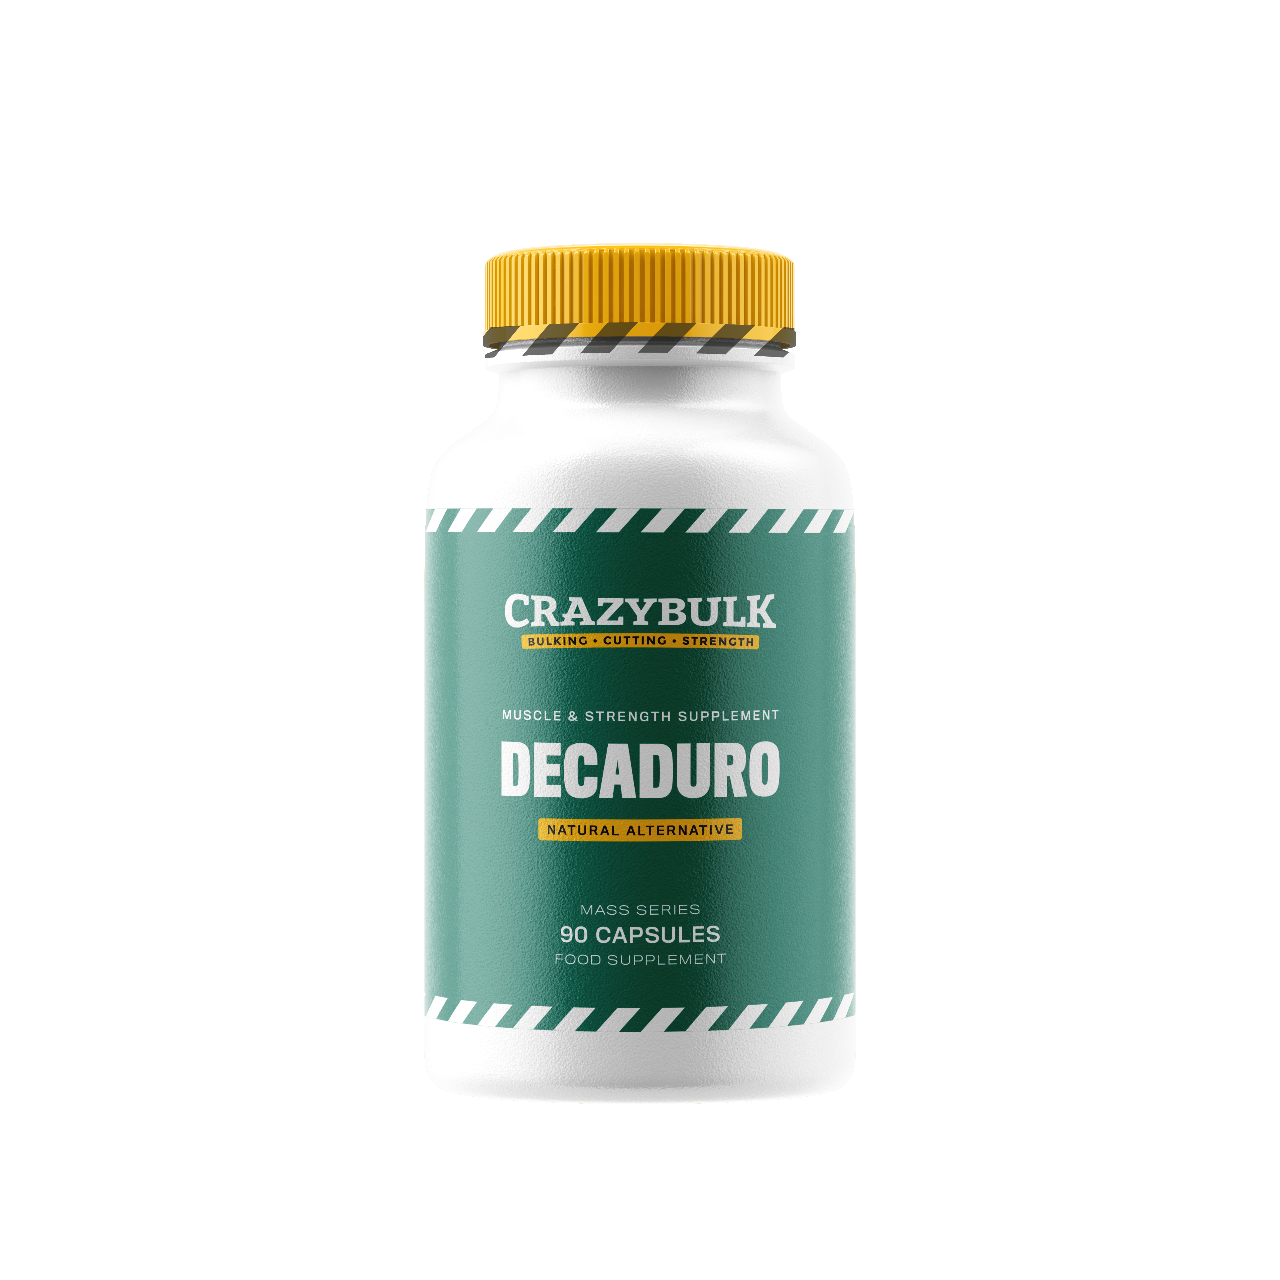 a picture of Decaduro a legal supplement for bulking